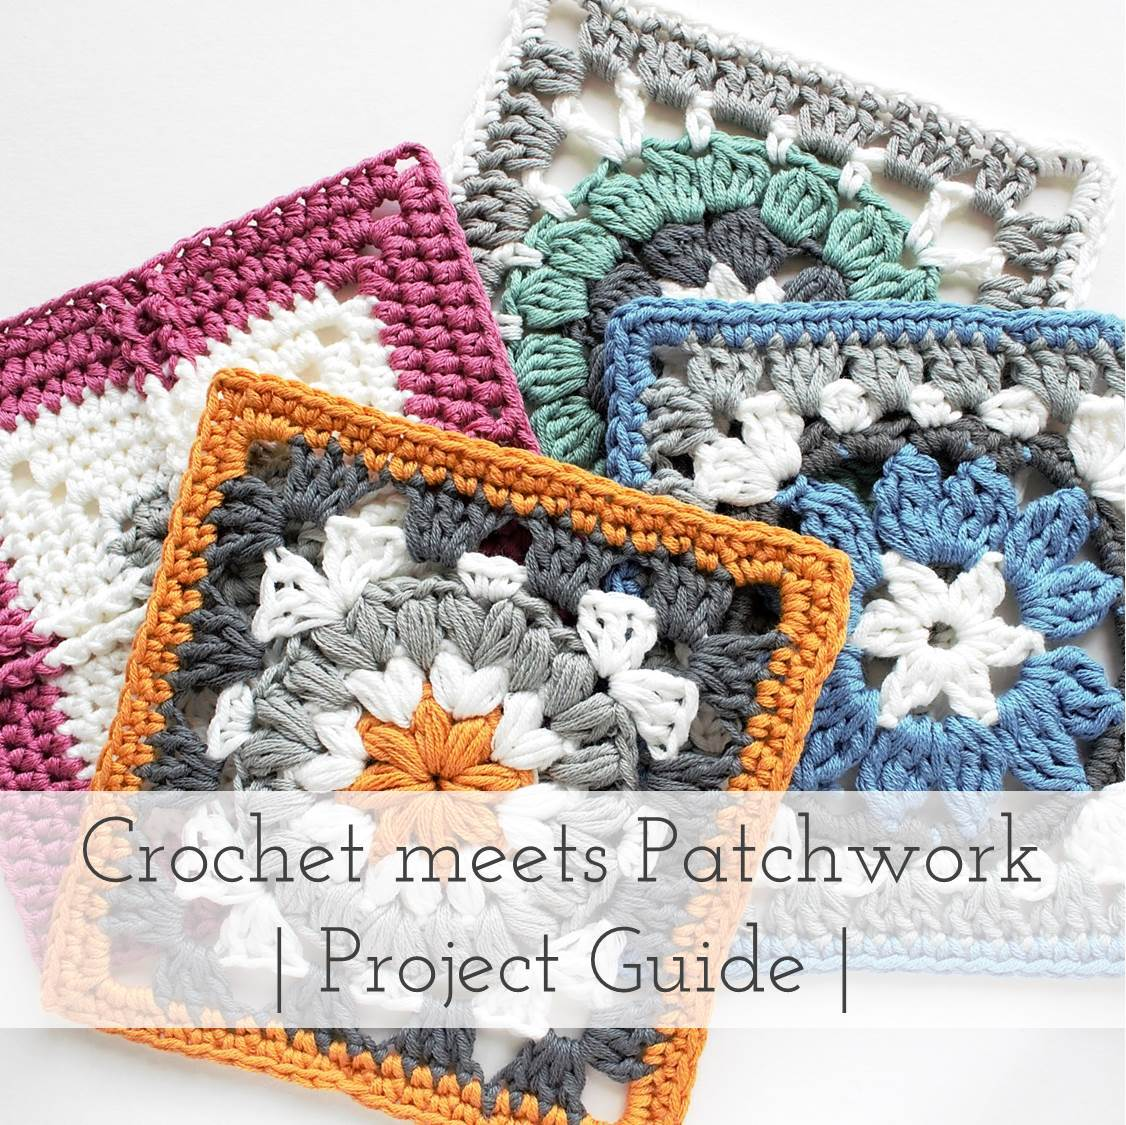 Crochet meets Patchwork Blanket | Project Guide